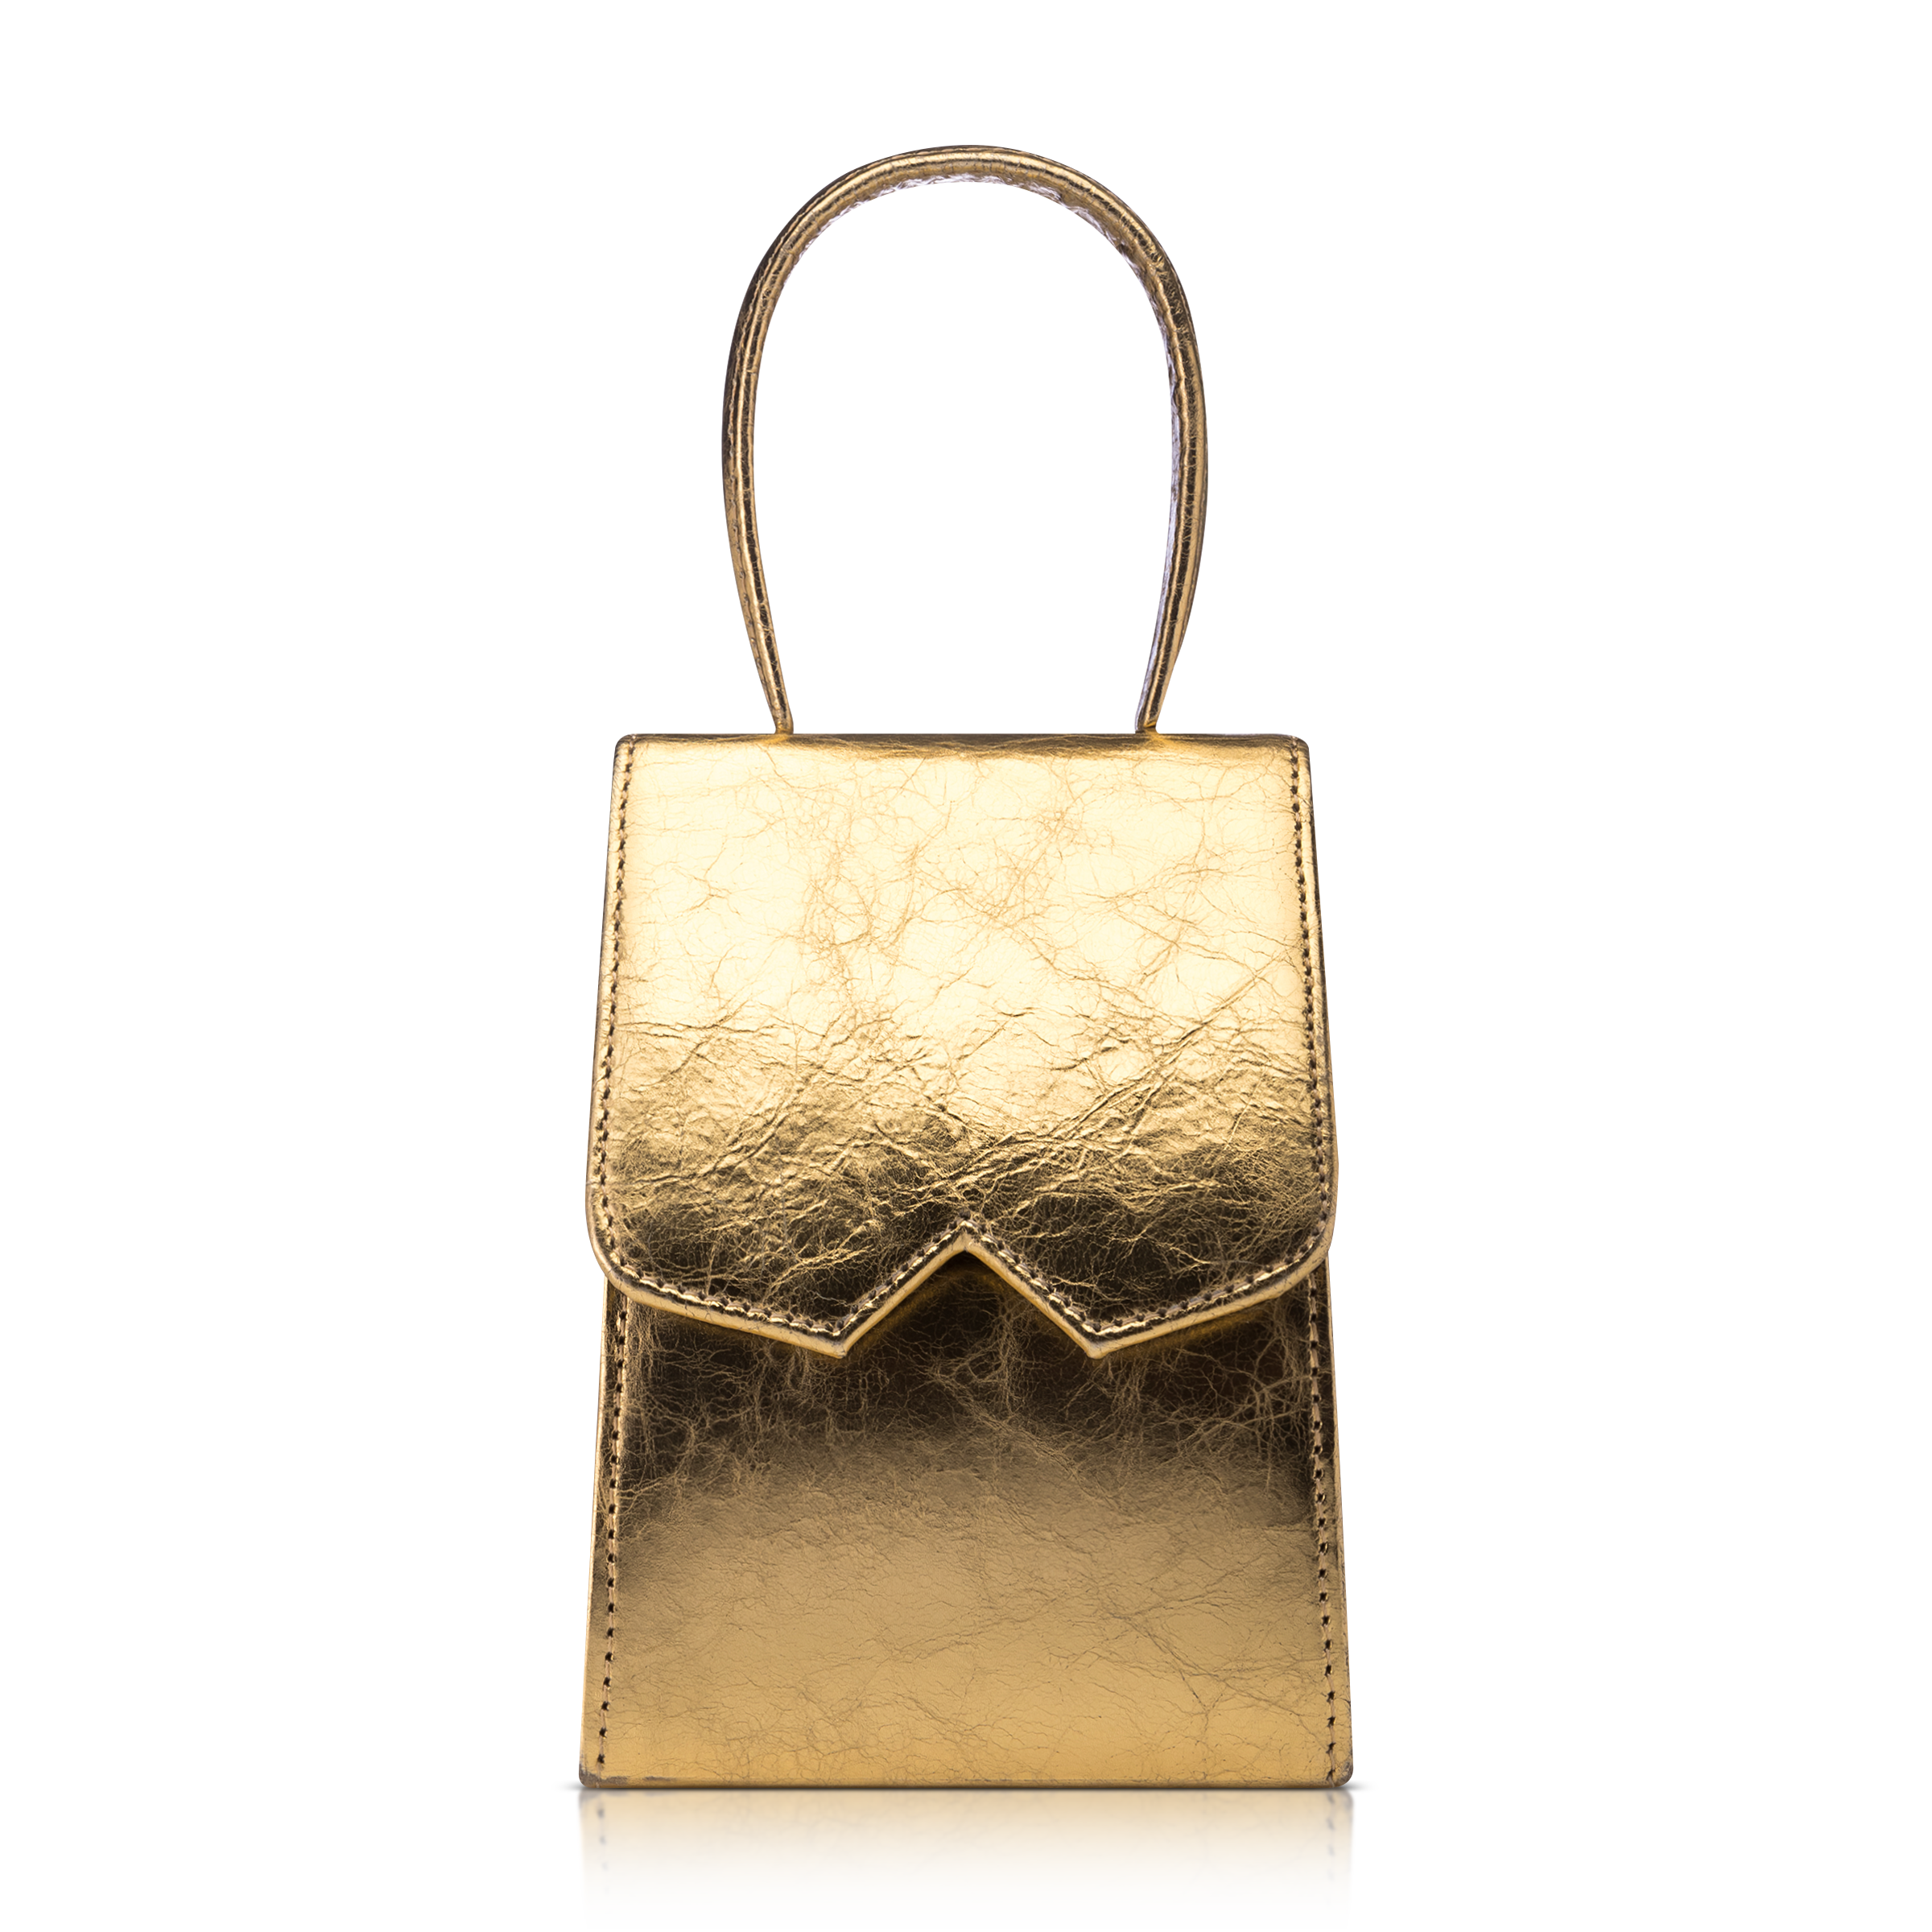 Golden bag product photo